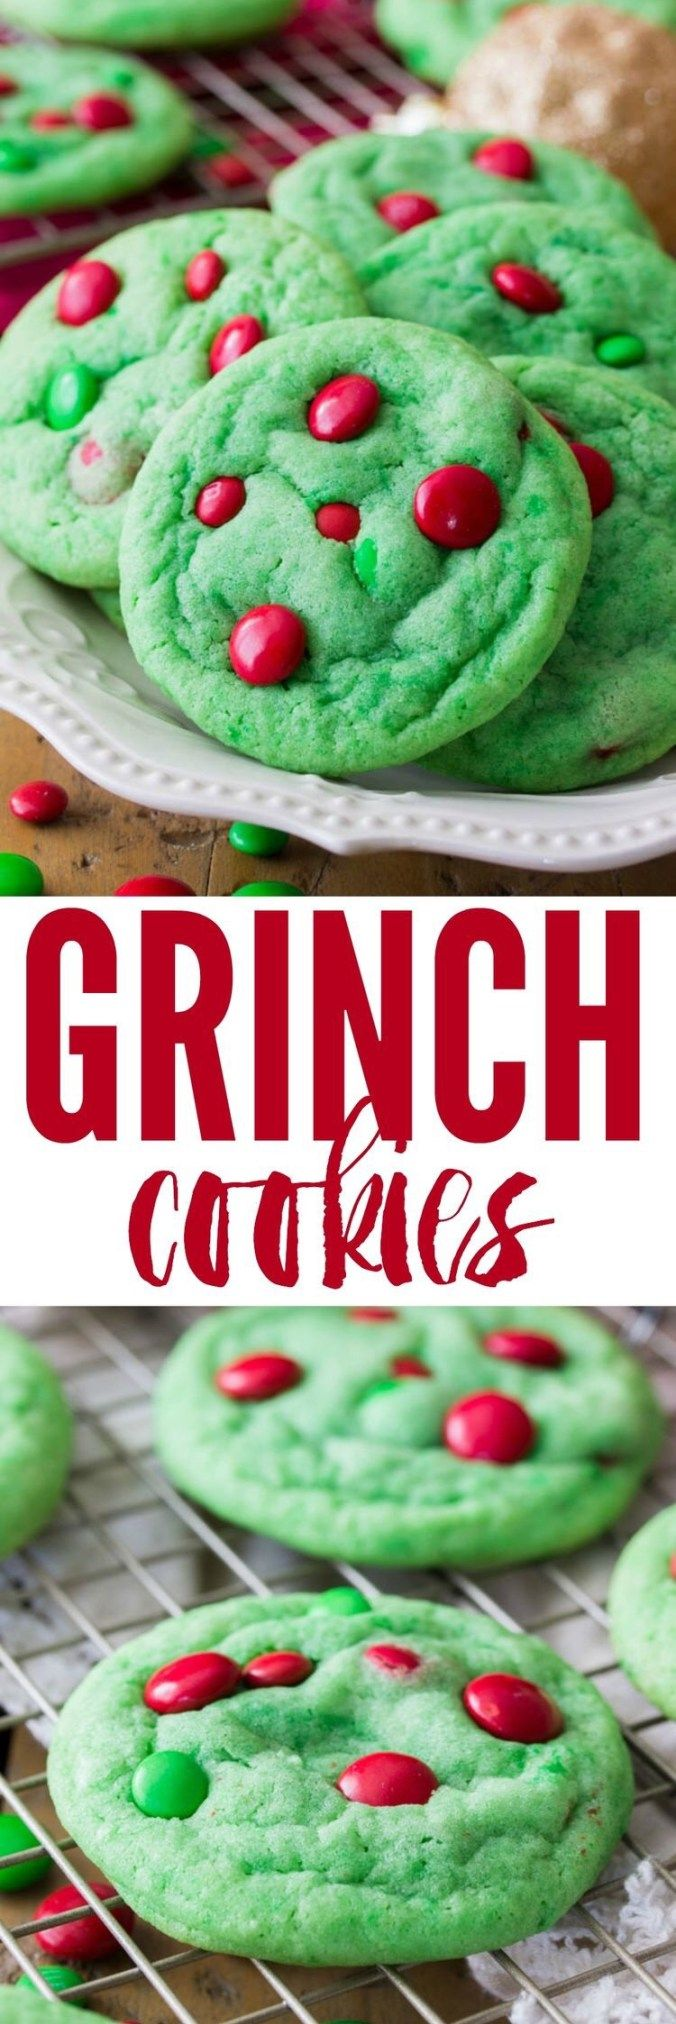 35 Christmas Cookie Recipes to Make for the Holidays - The Thrifty Kiwi